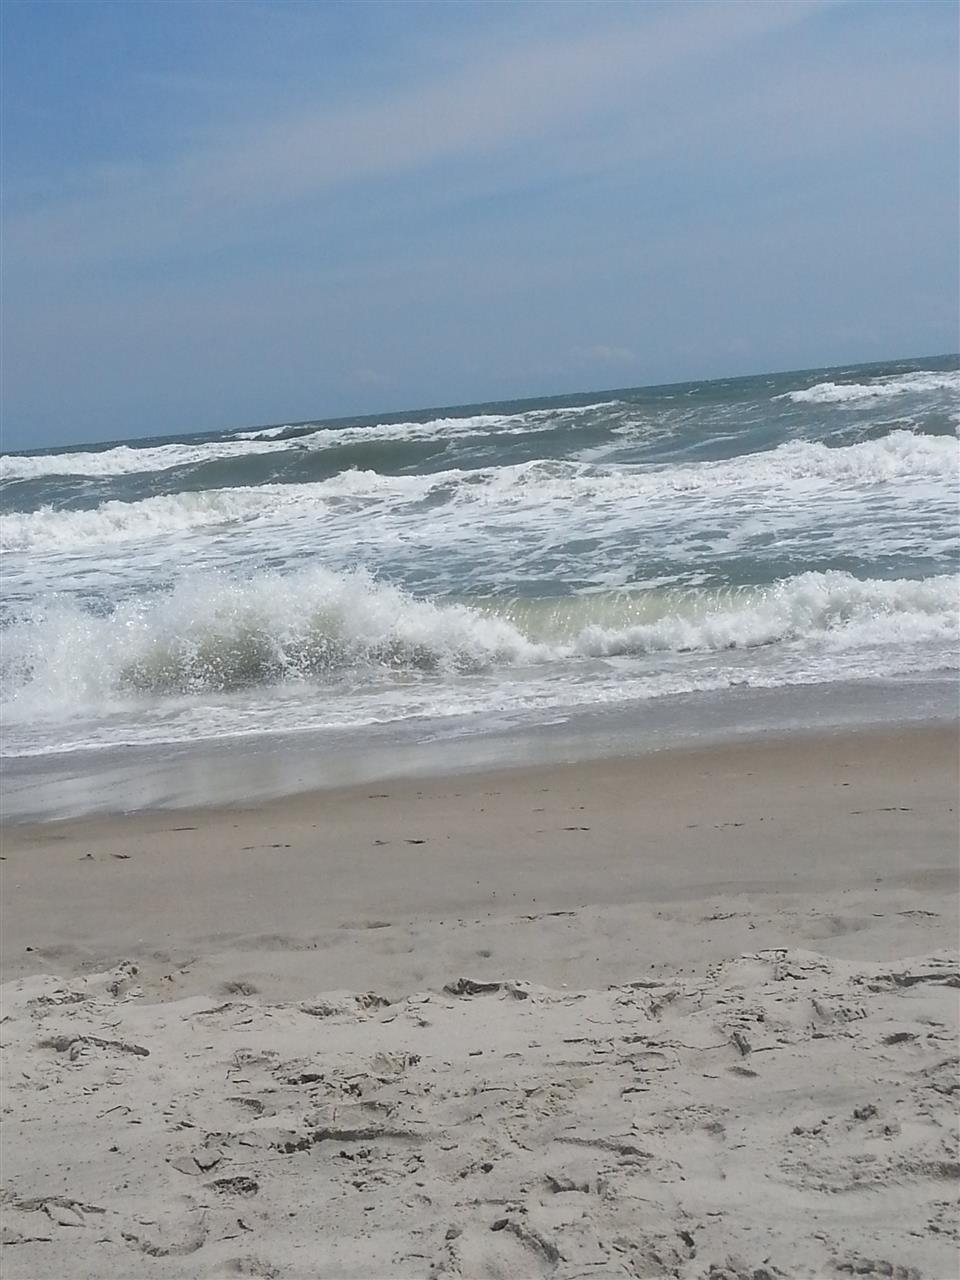 A day at the beach with rough waters, Morehead City NC